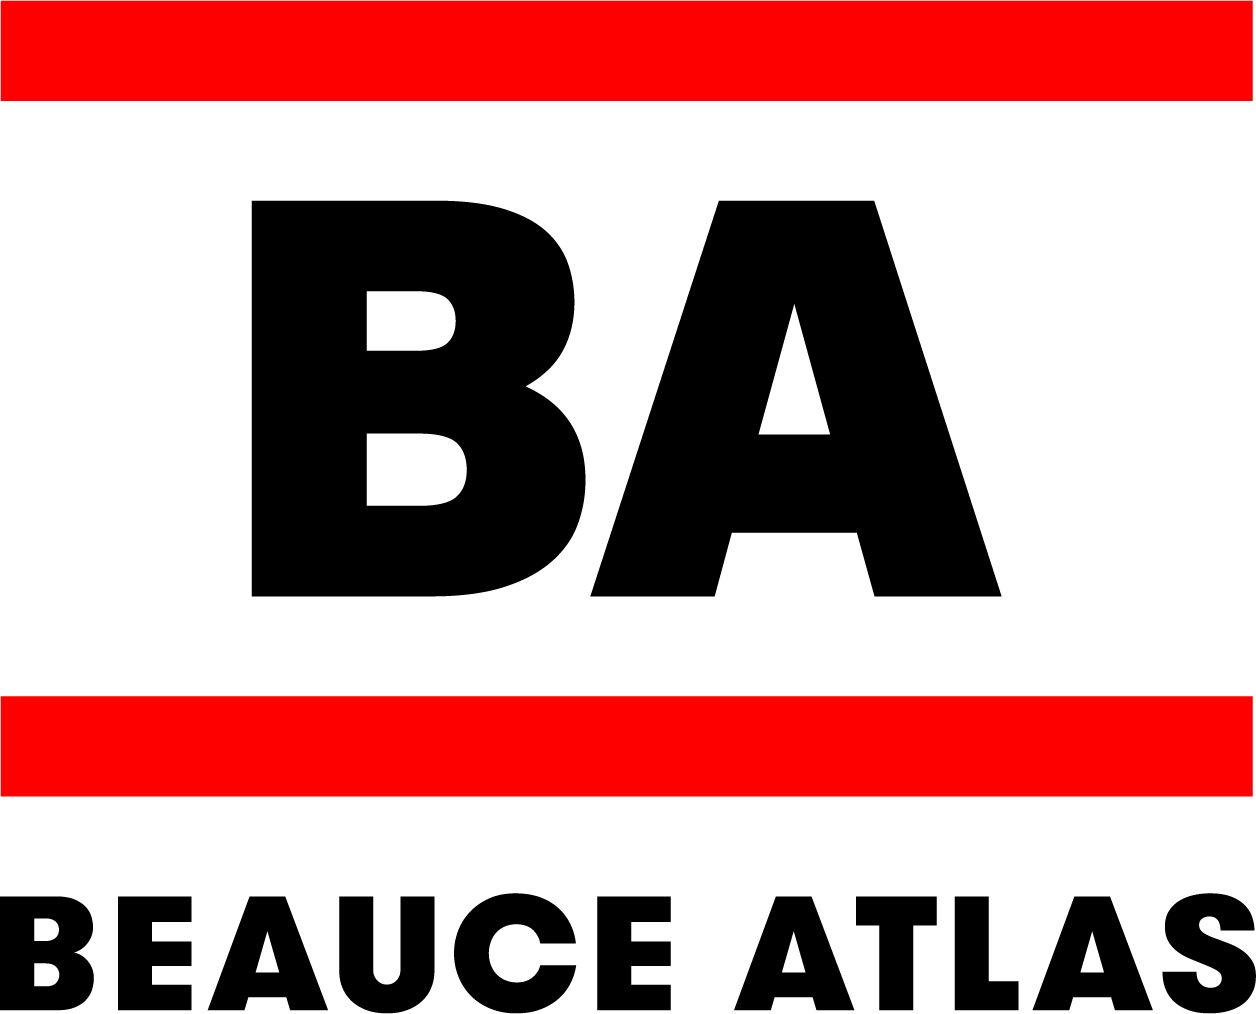 Beauce Atlas